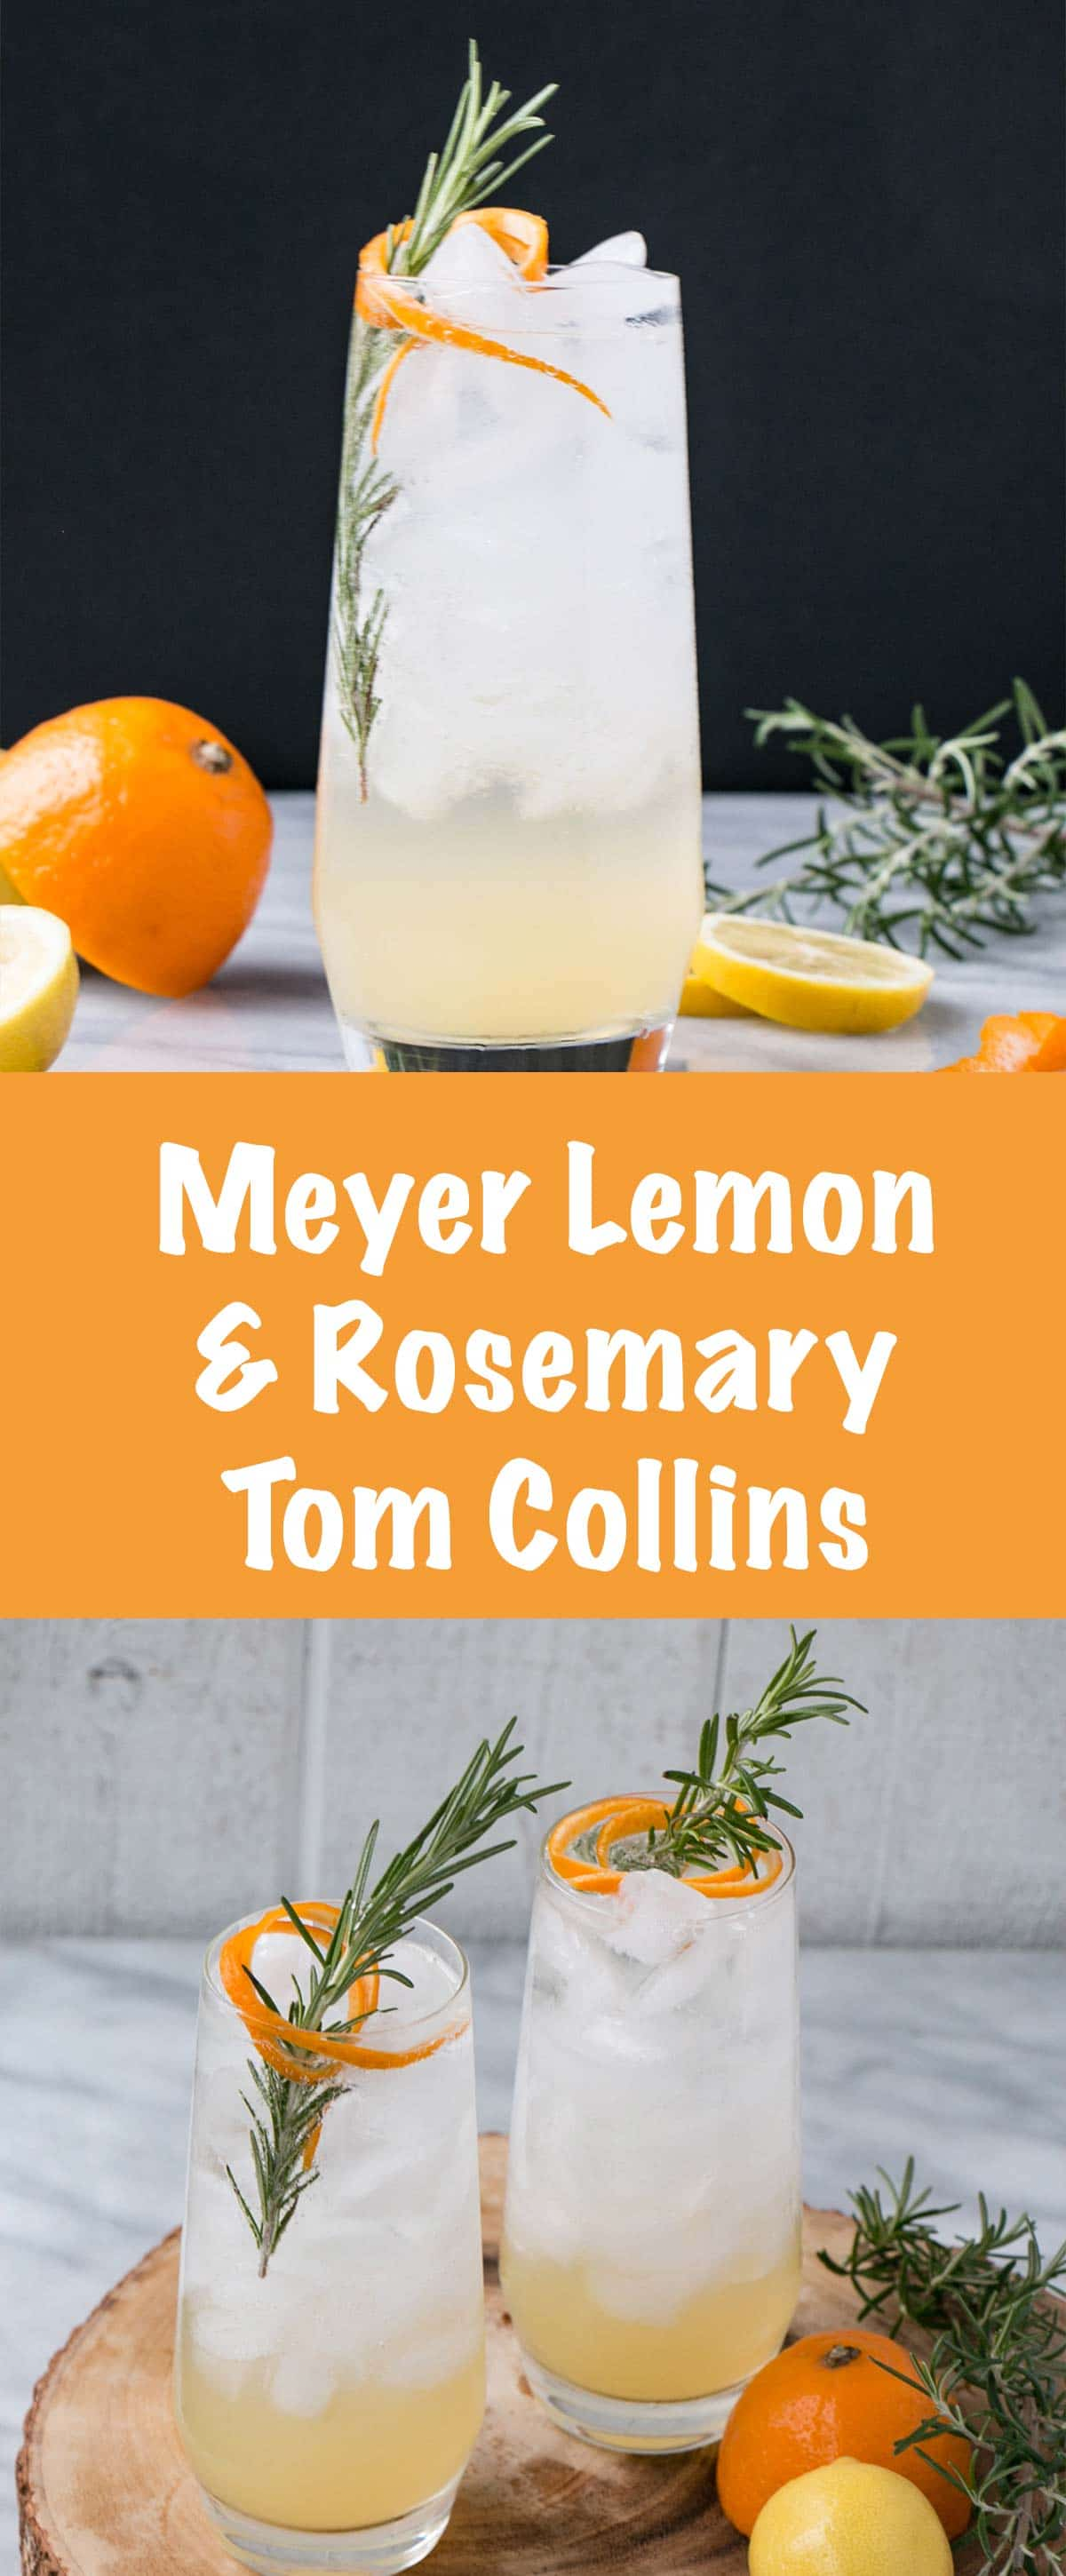 Meyer Lemon and Rosemary Tom Collins is a refreshing seasonal recipe that has a hint of rosemary and the bright taste of Meyer Lemon. #cocktail #drink #tomcollins